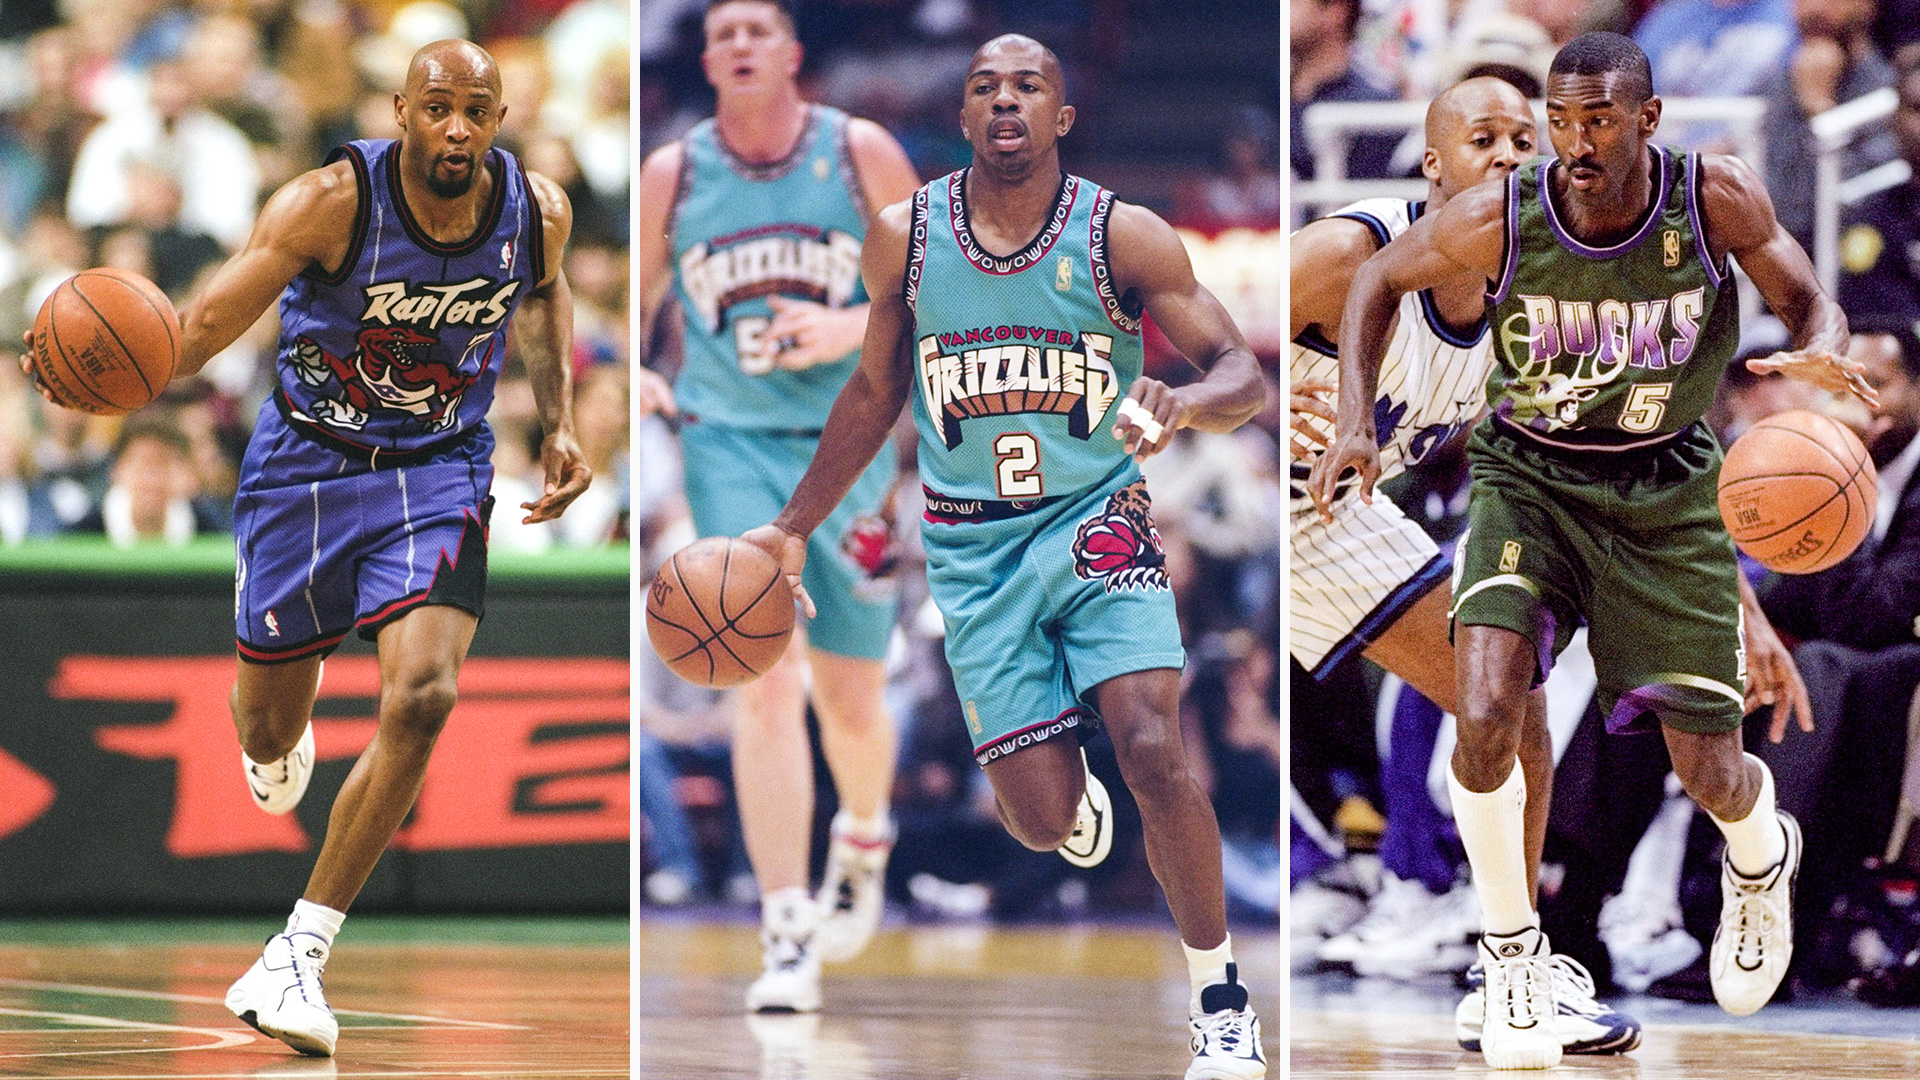 1990s NBA uniforms, ranked from cartoonish best to technicolor worst